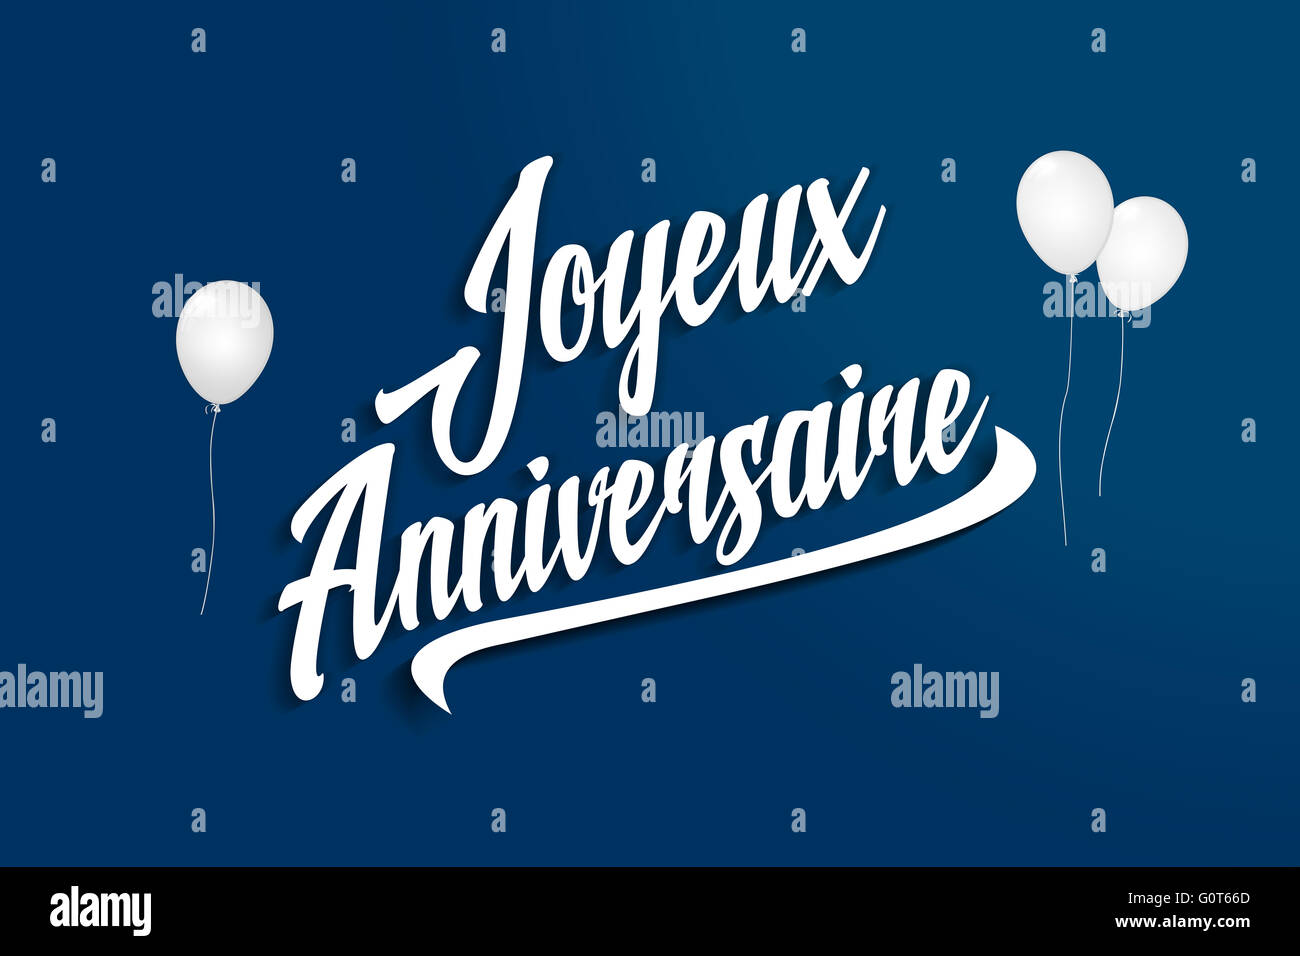 Joyeux Anniversaire Happy Birthday In French Balloons Stock